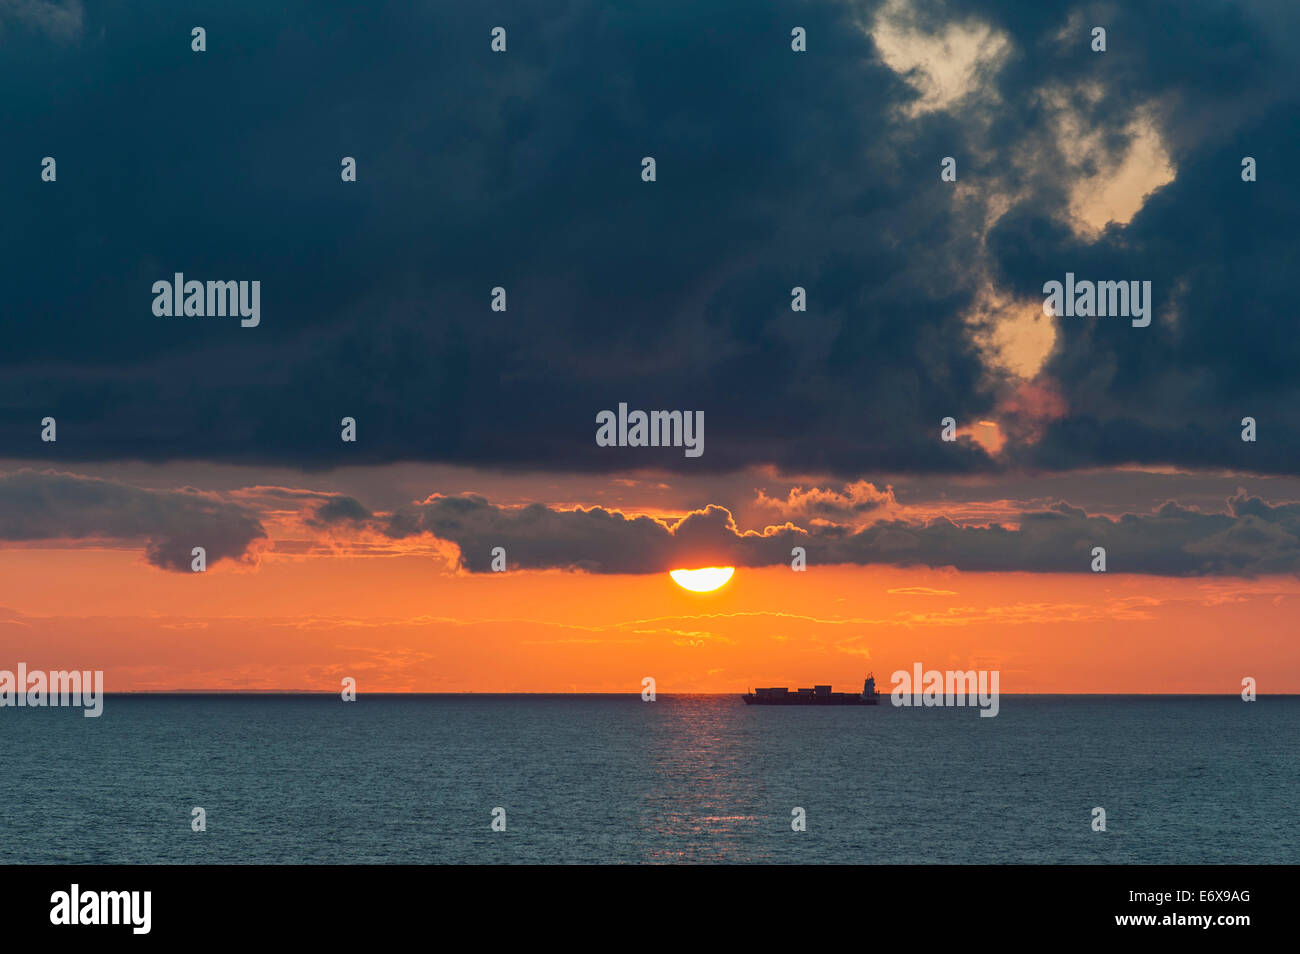 Baltic Sea at sunset, container ship at the back, clouds, off the island of Gotland, Sweden - Stock Image